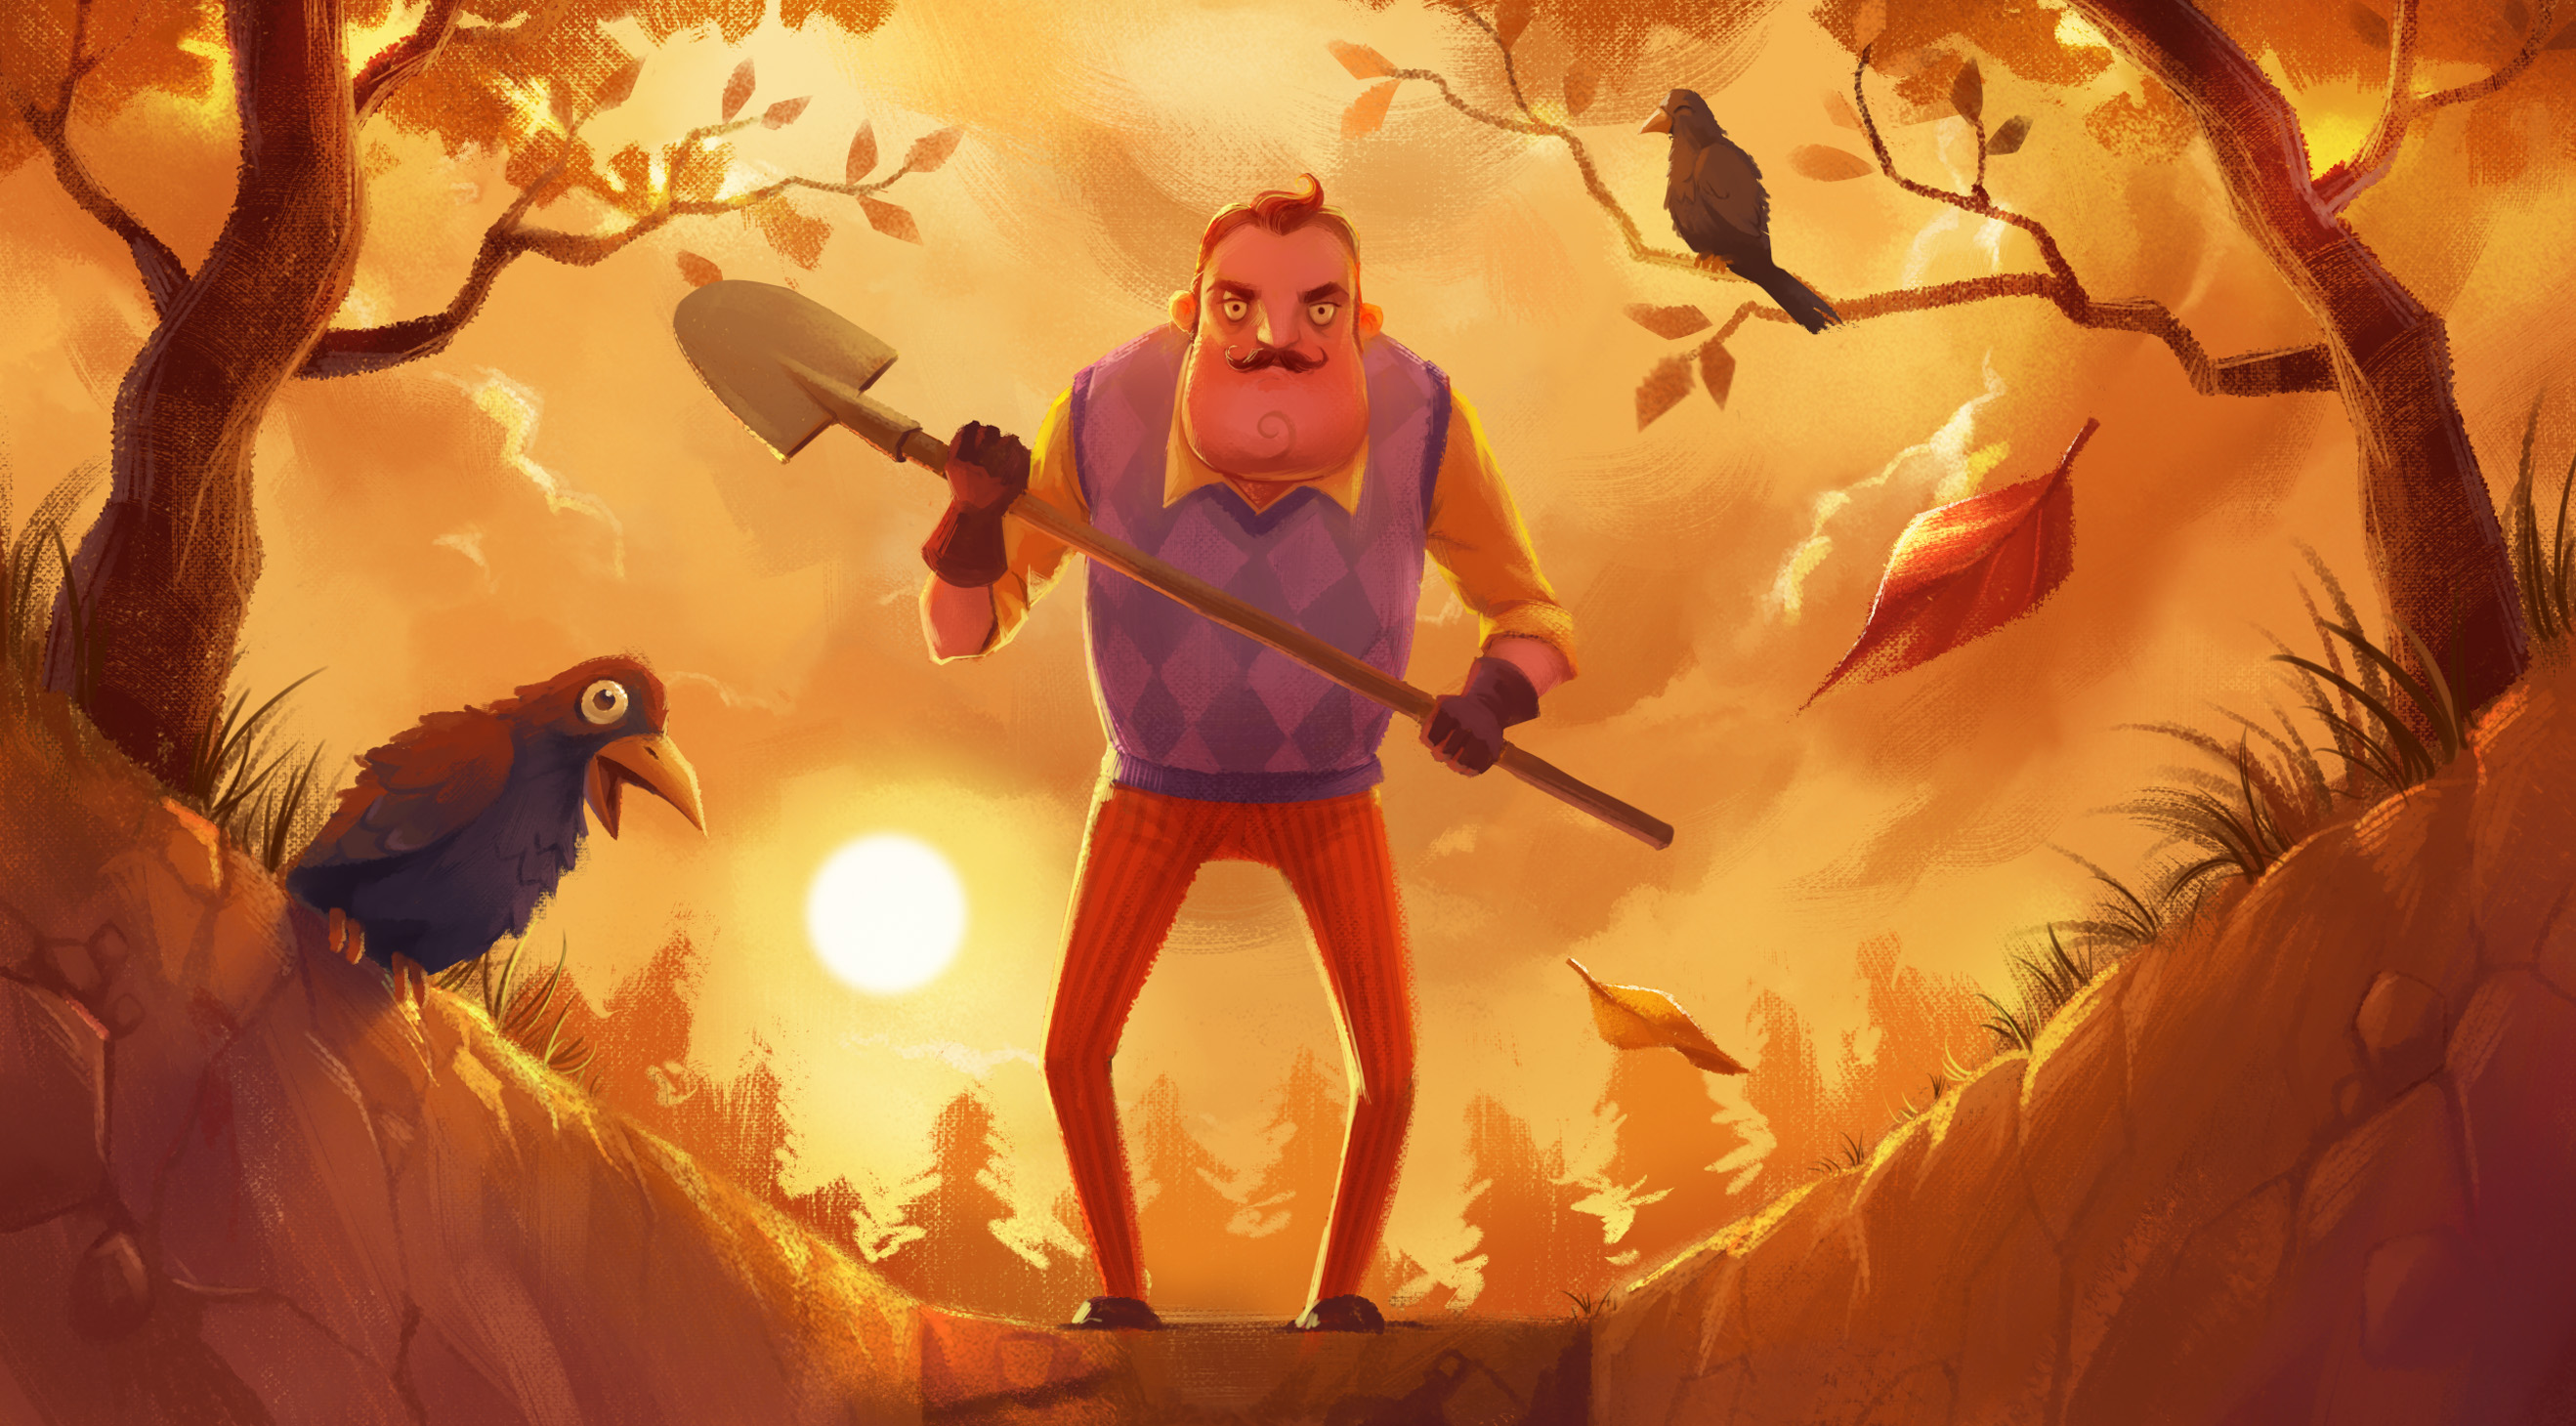 Hello Neighbor – A Stealth Horror Game With Advanced AI